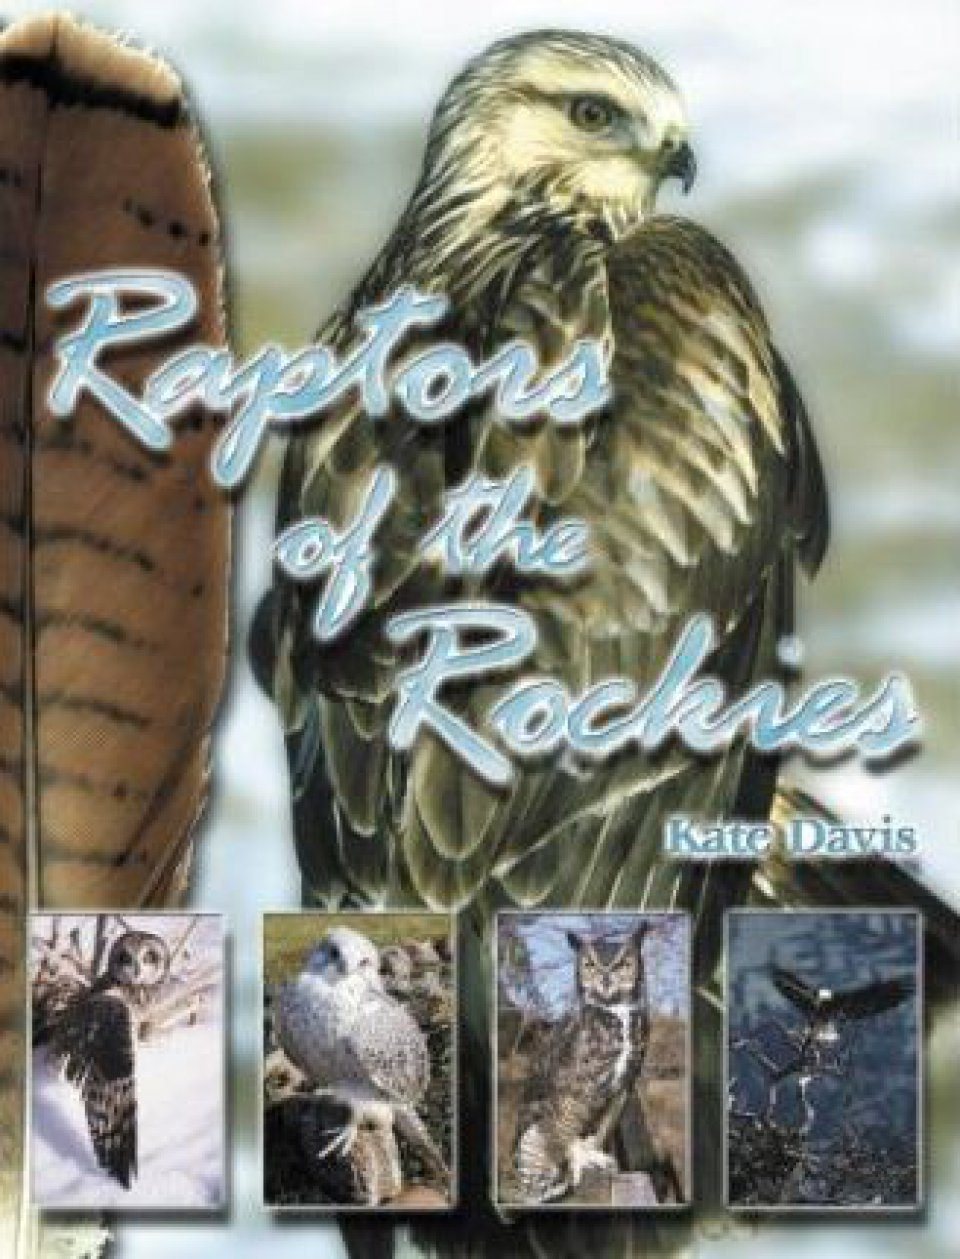 Raptors of the Rockies